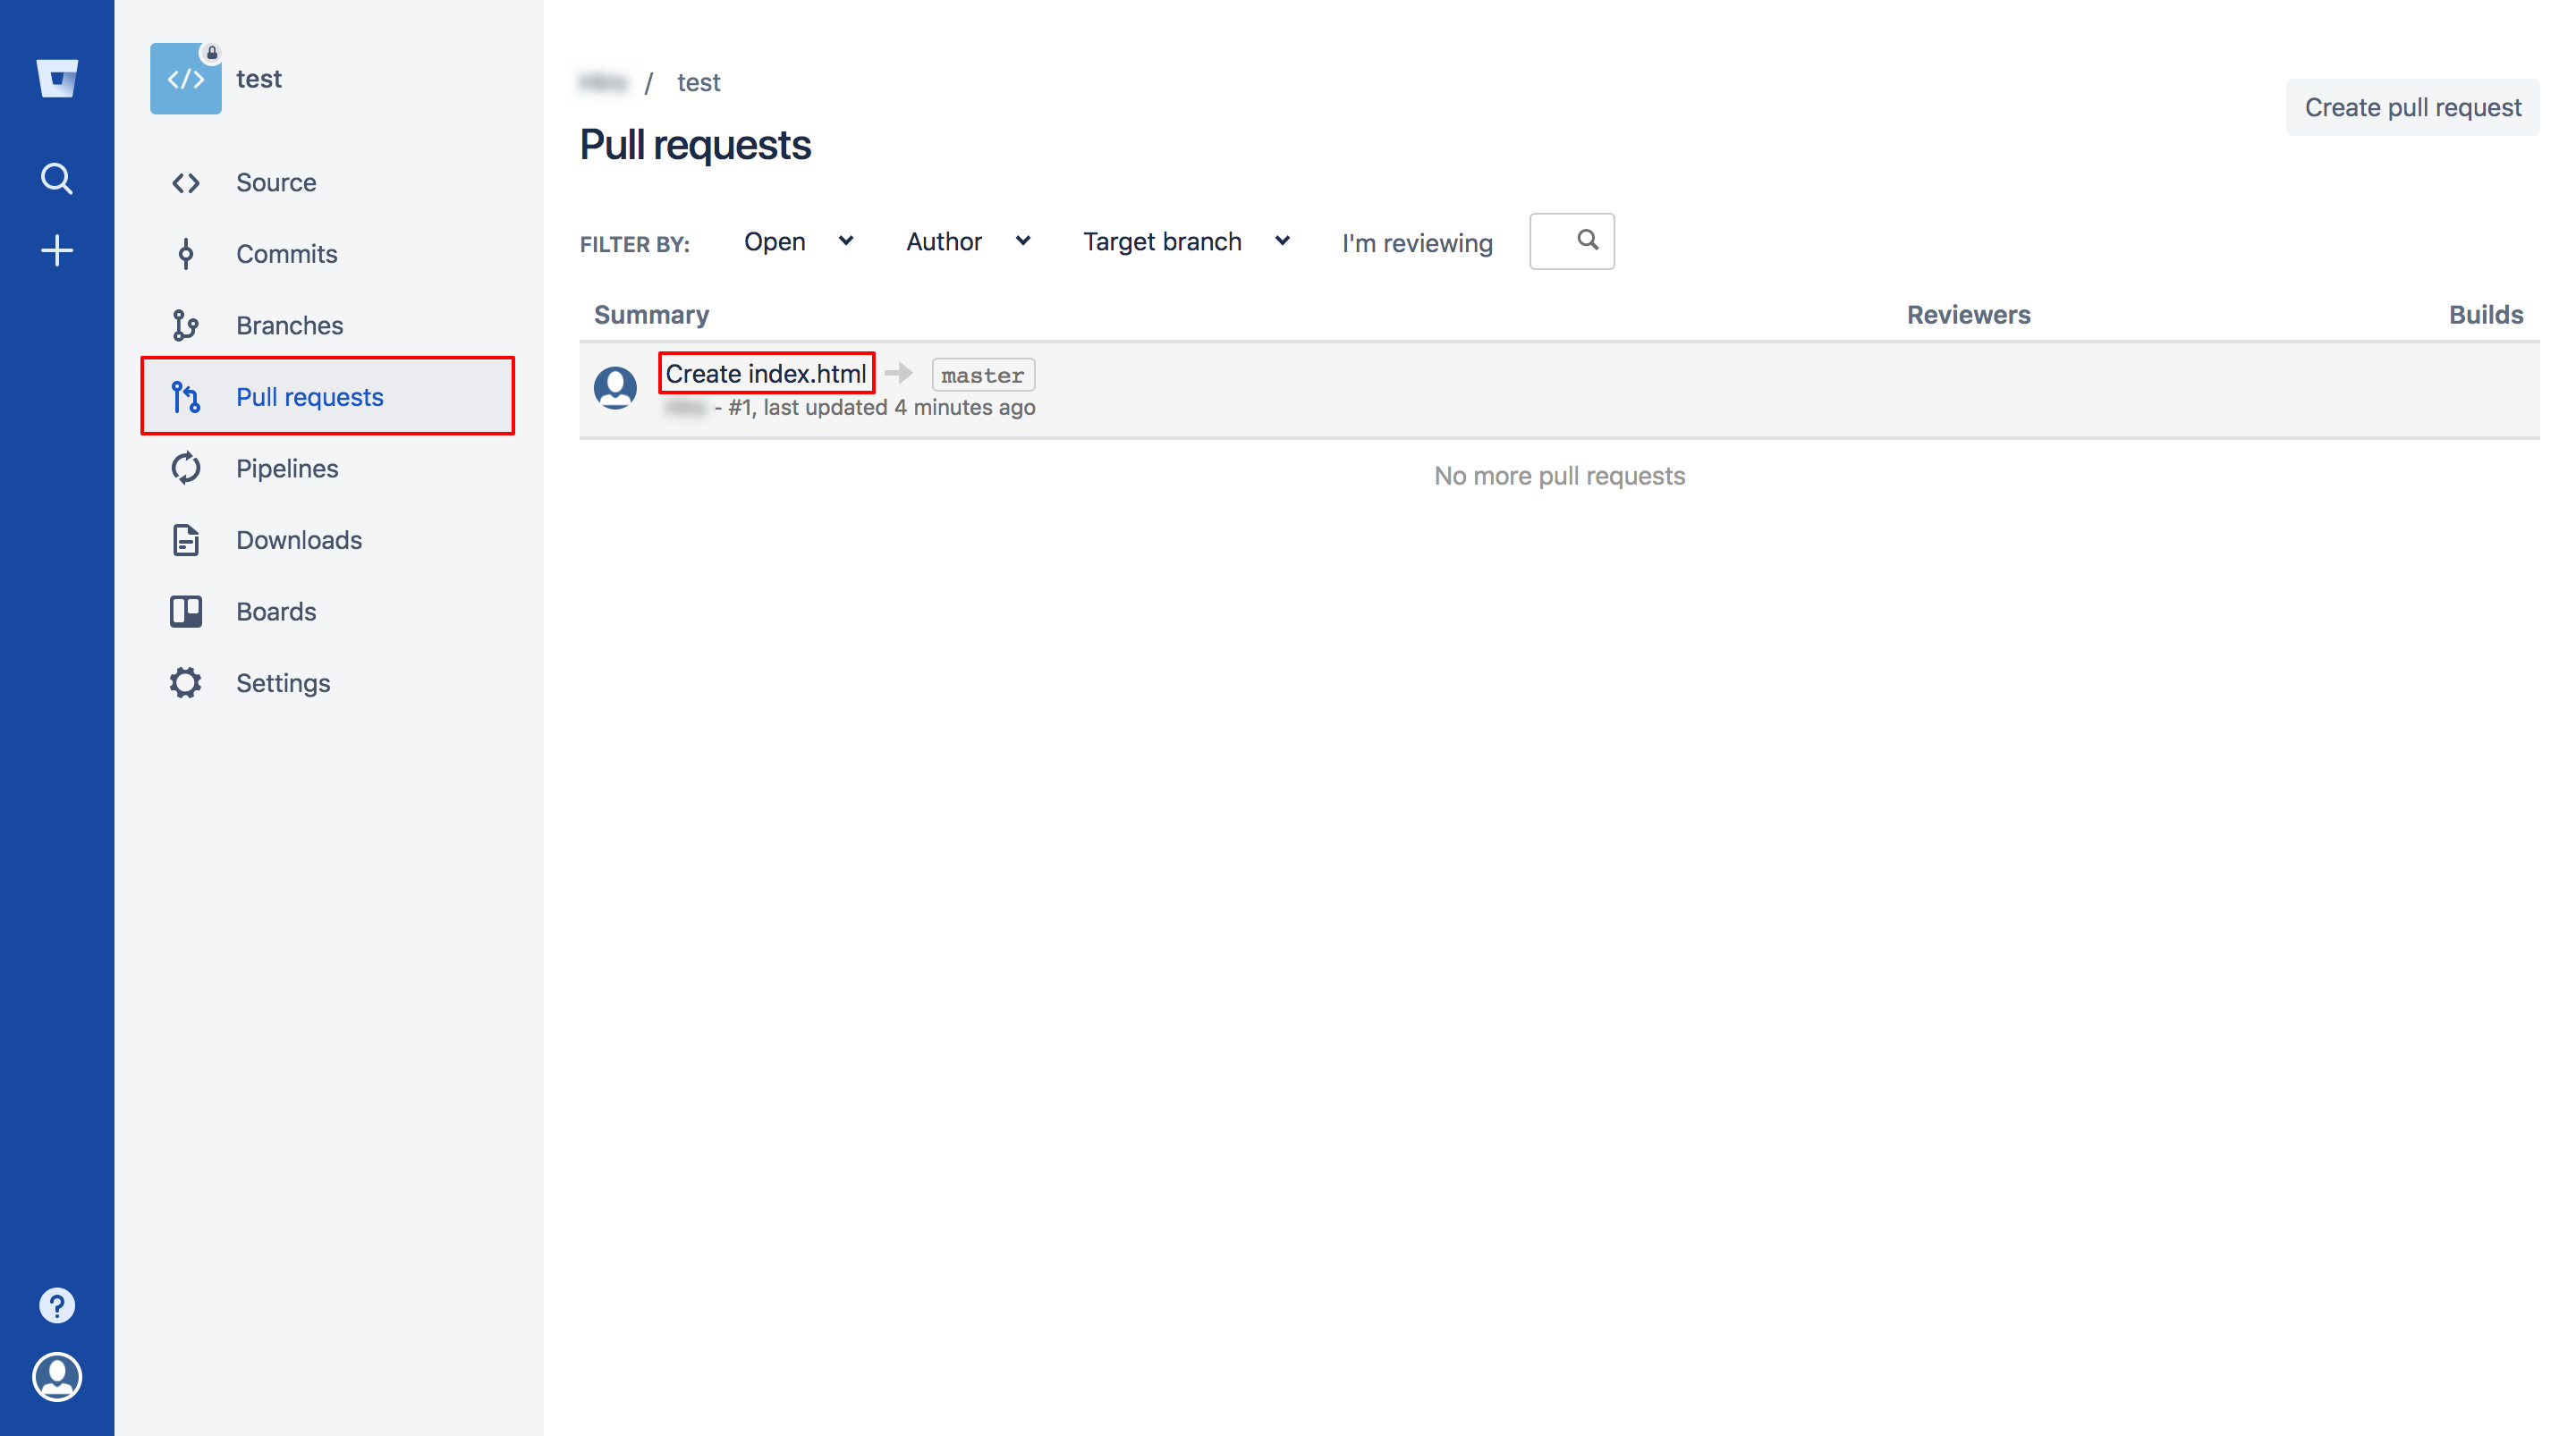 nago3   test   Pull requests — Bitbucket (1).png